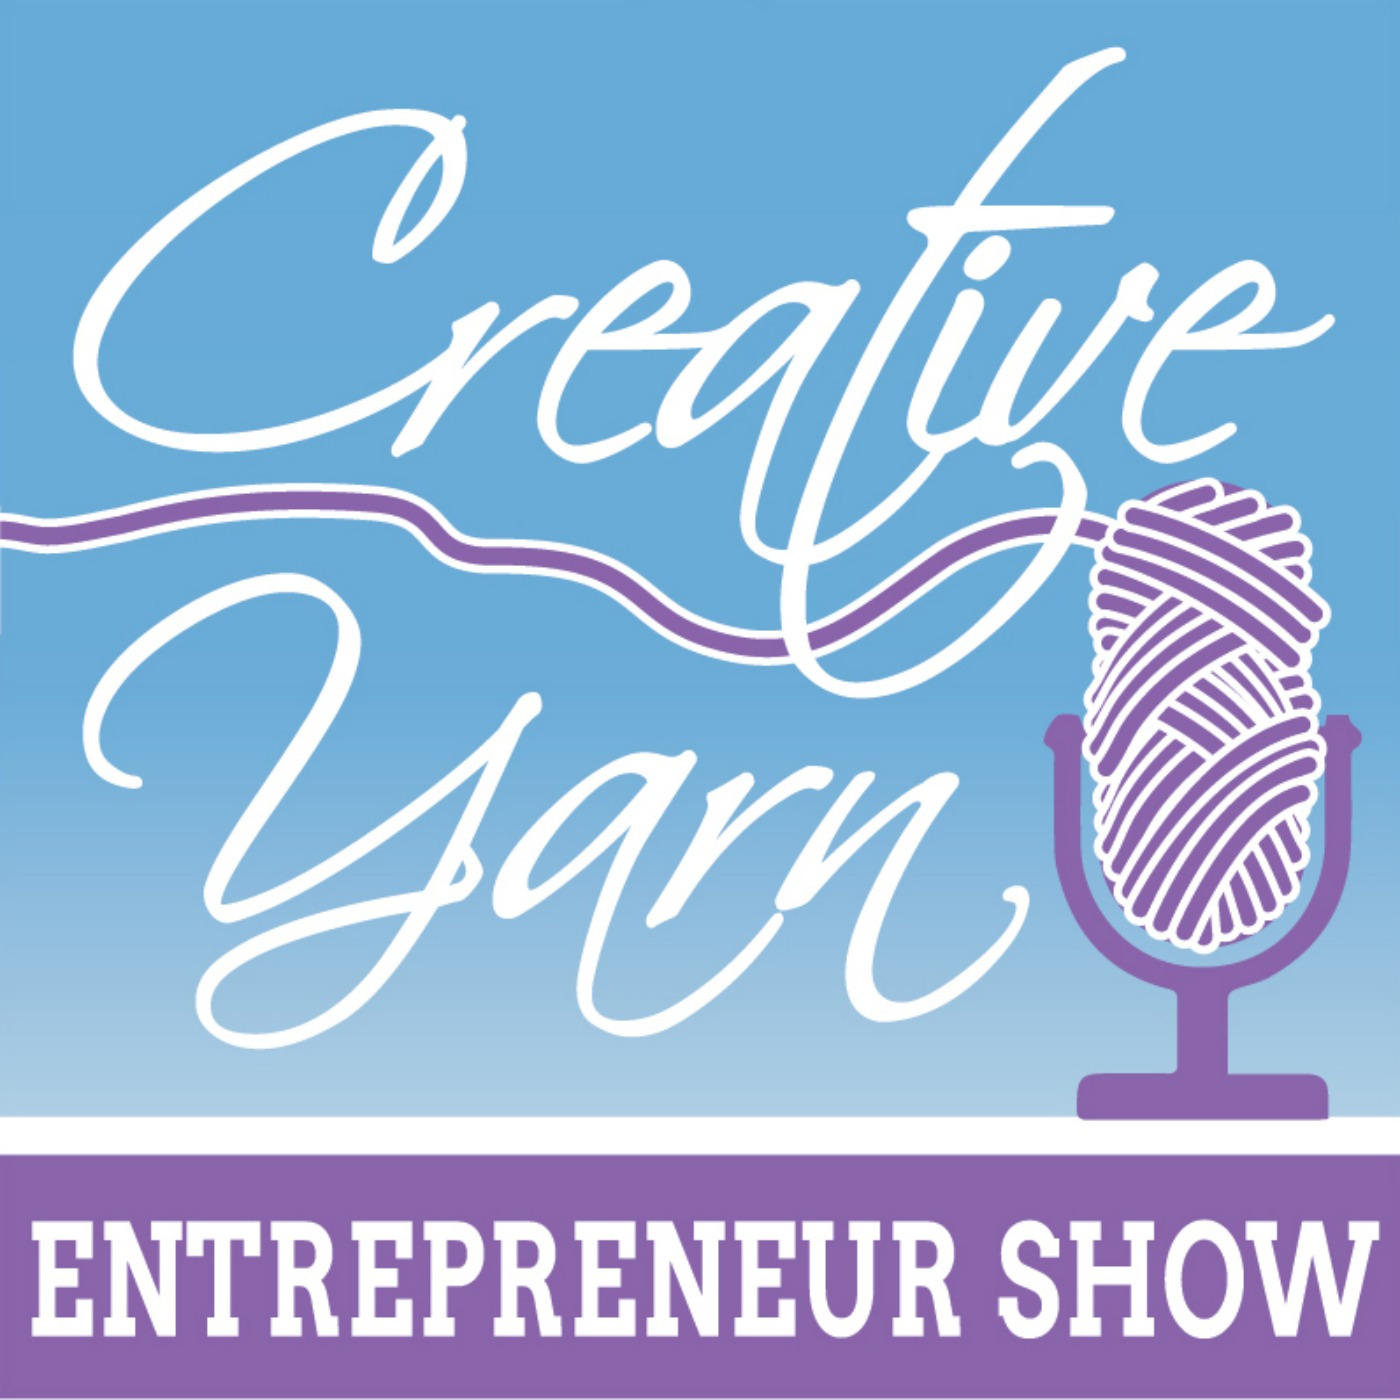 Episode 17: 5 Tips for Hosting a Successful Crochet-, Knit-, or Make-a-Long Online - The Creative Yarn Entrepreneur Show